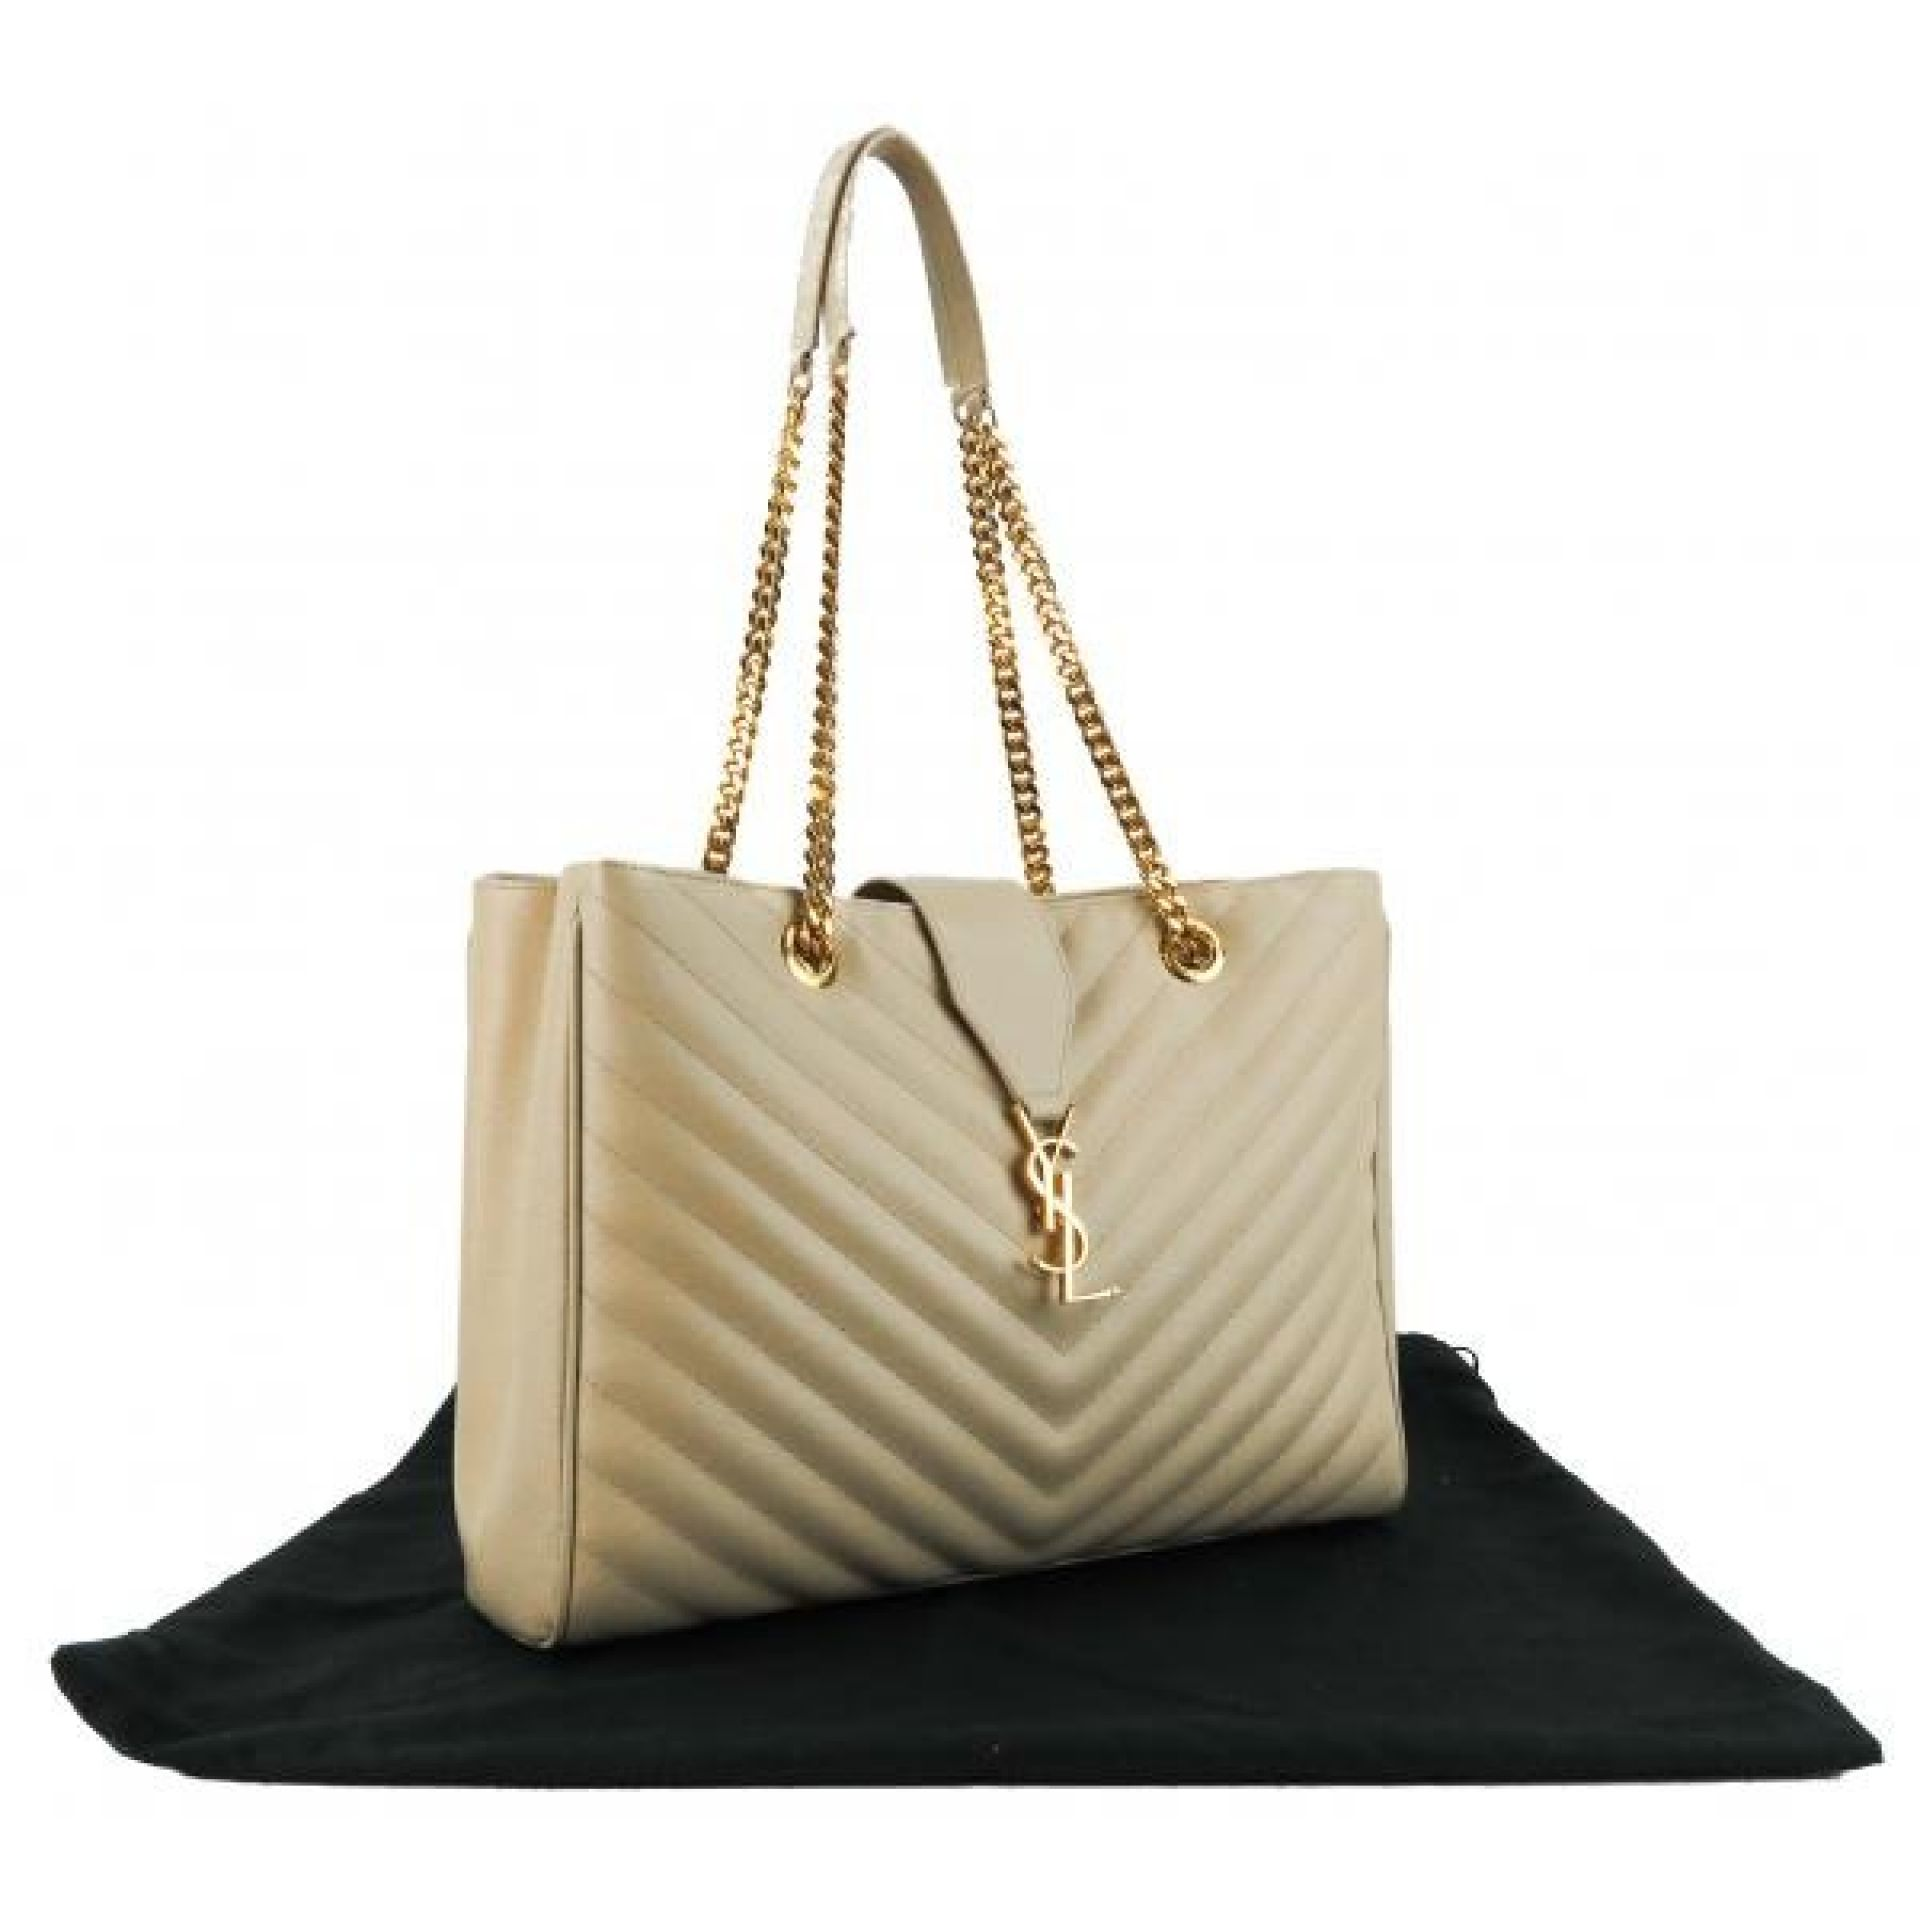 Saint Laurent Beige Mattelasse Leather Chevron Shopping Tote Bag